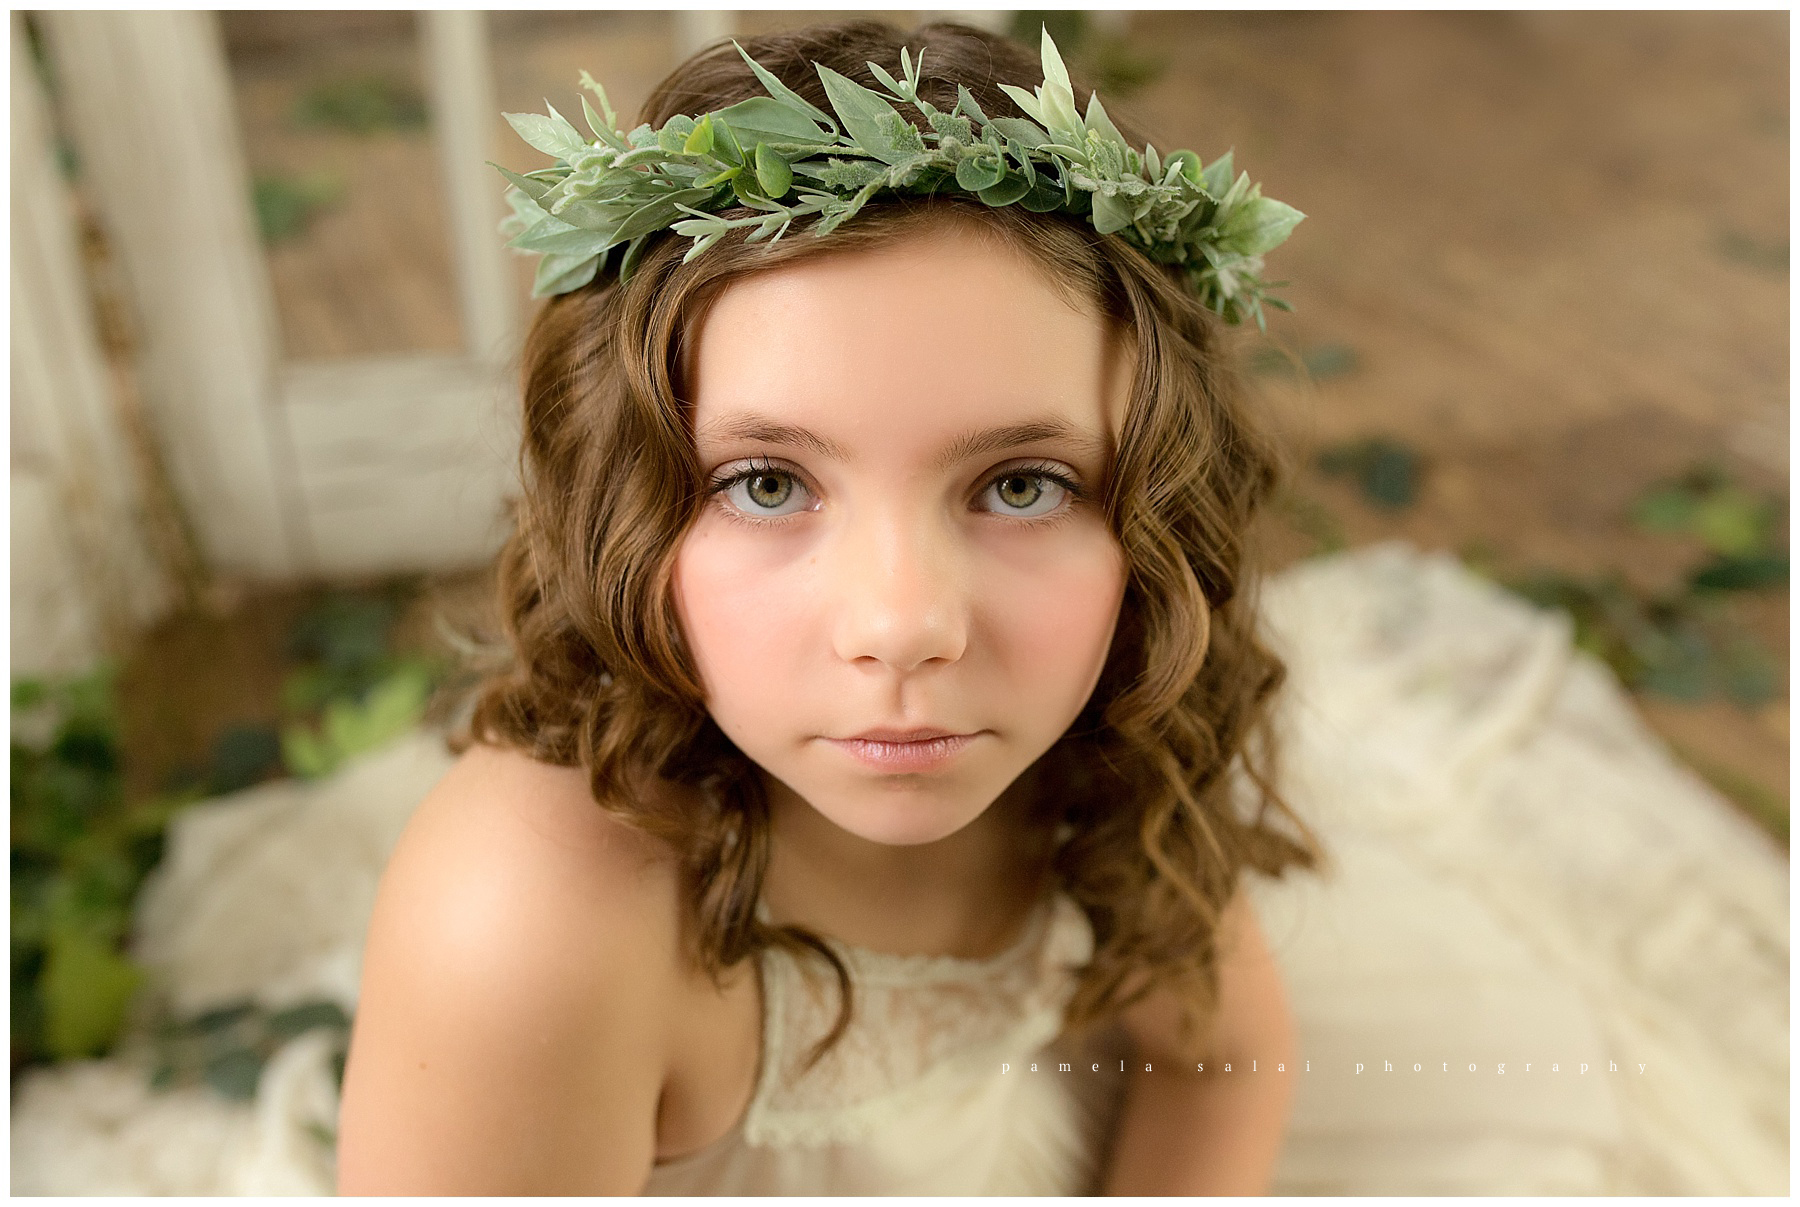 secret garden pamela salai photography wanderlight studio natural light child posing